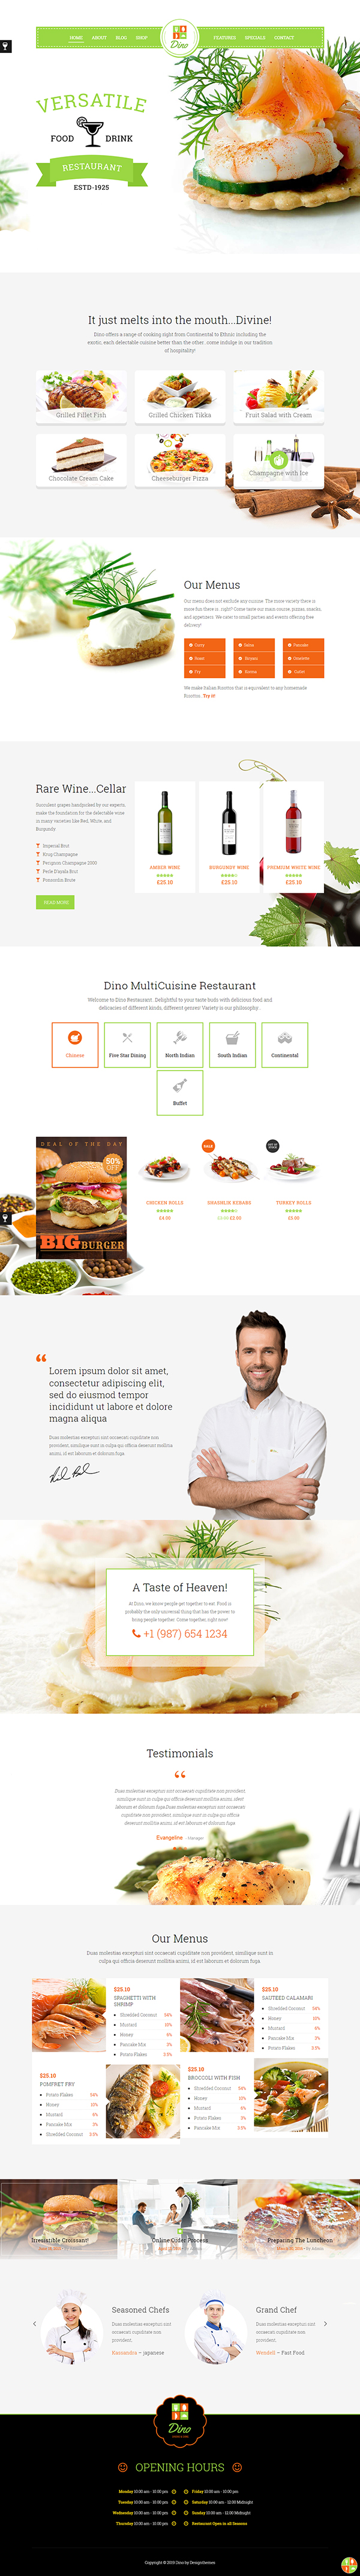 Dino - Bakery Fast Food WP Theme